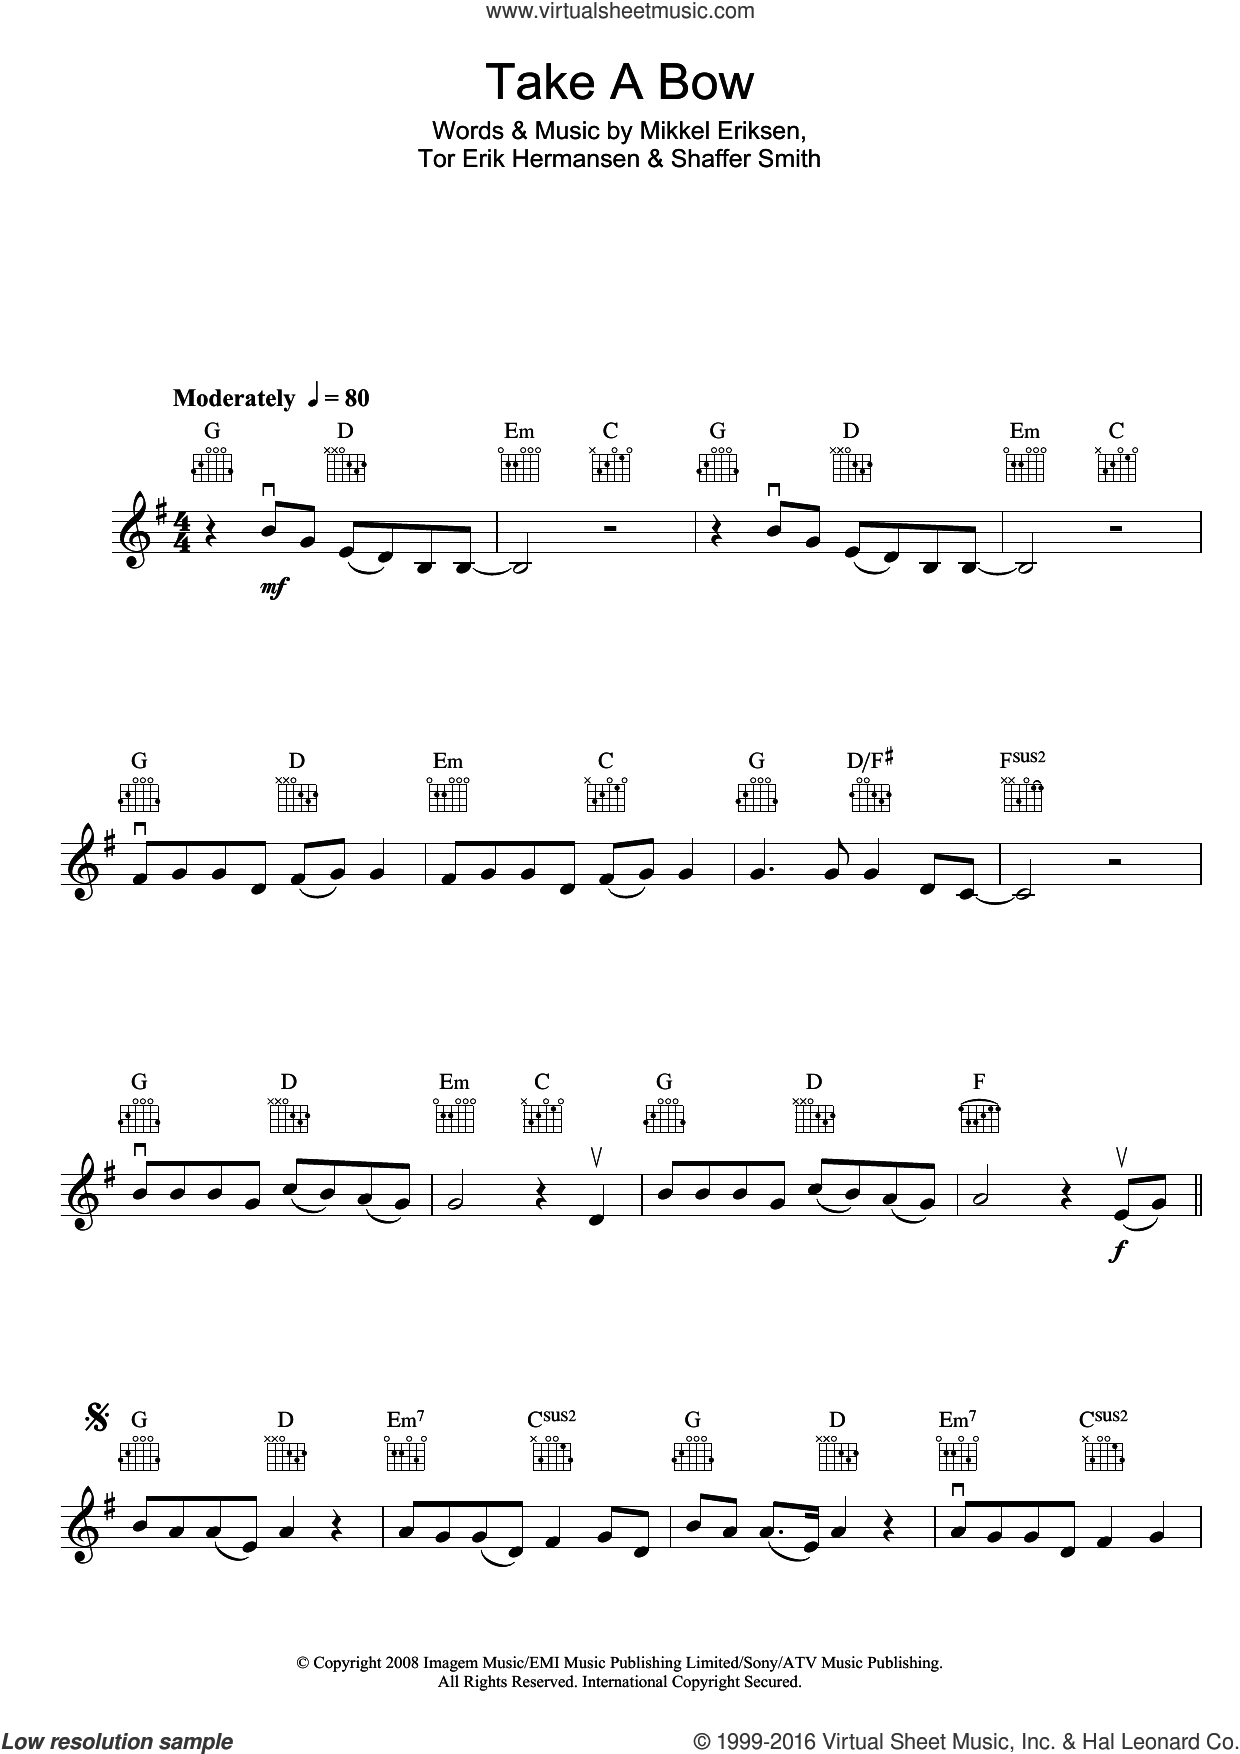 Take A Bow sheet music for violin solo by Tor Erik Hermansen, Rihanna, Mikkel Eriksen and Shaffer Smith. Score Image Preview.